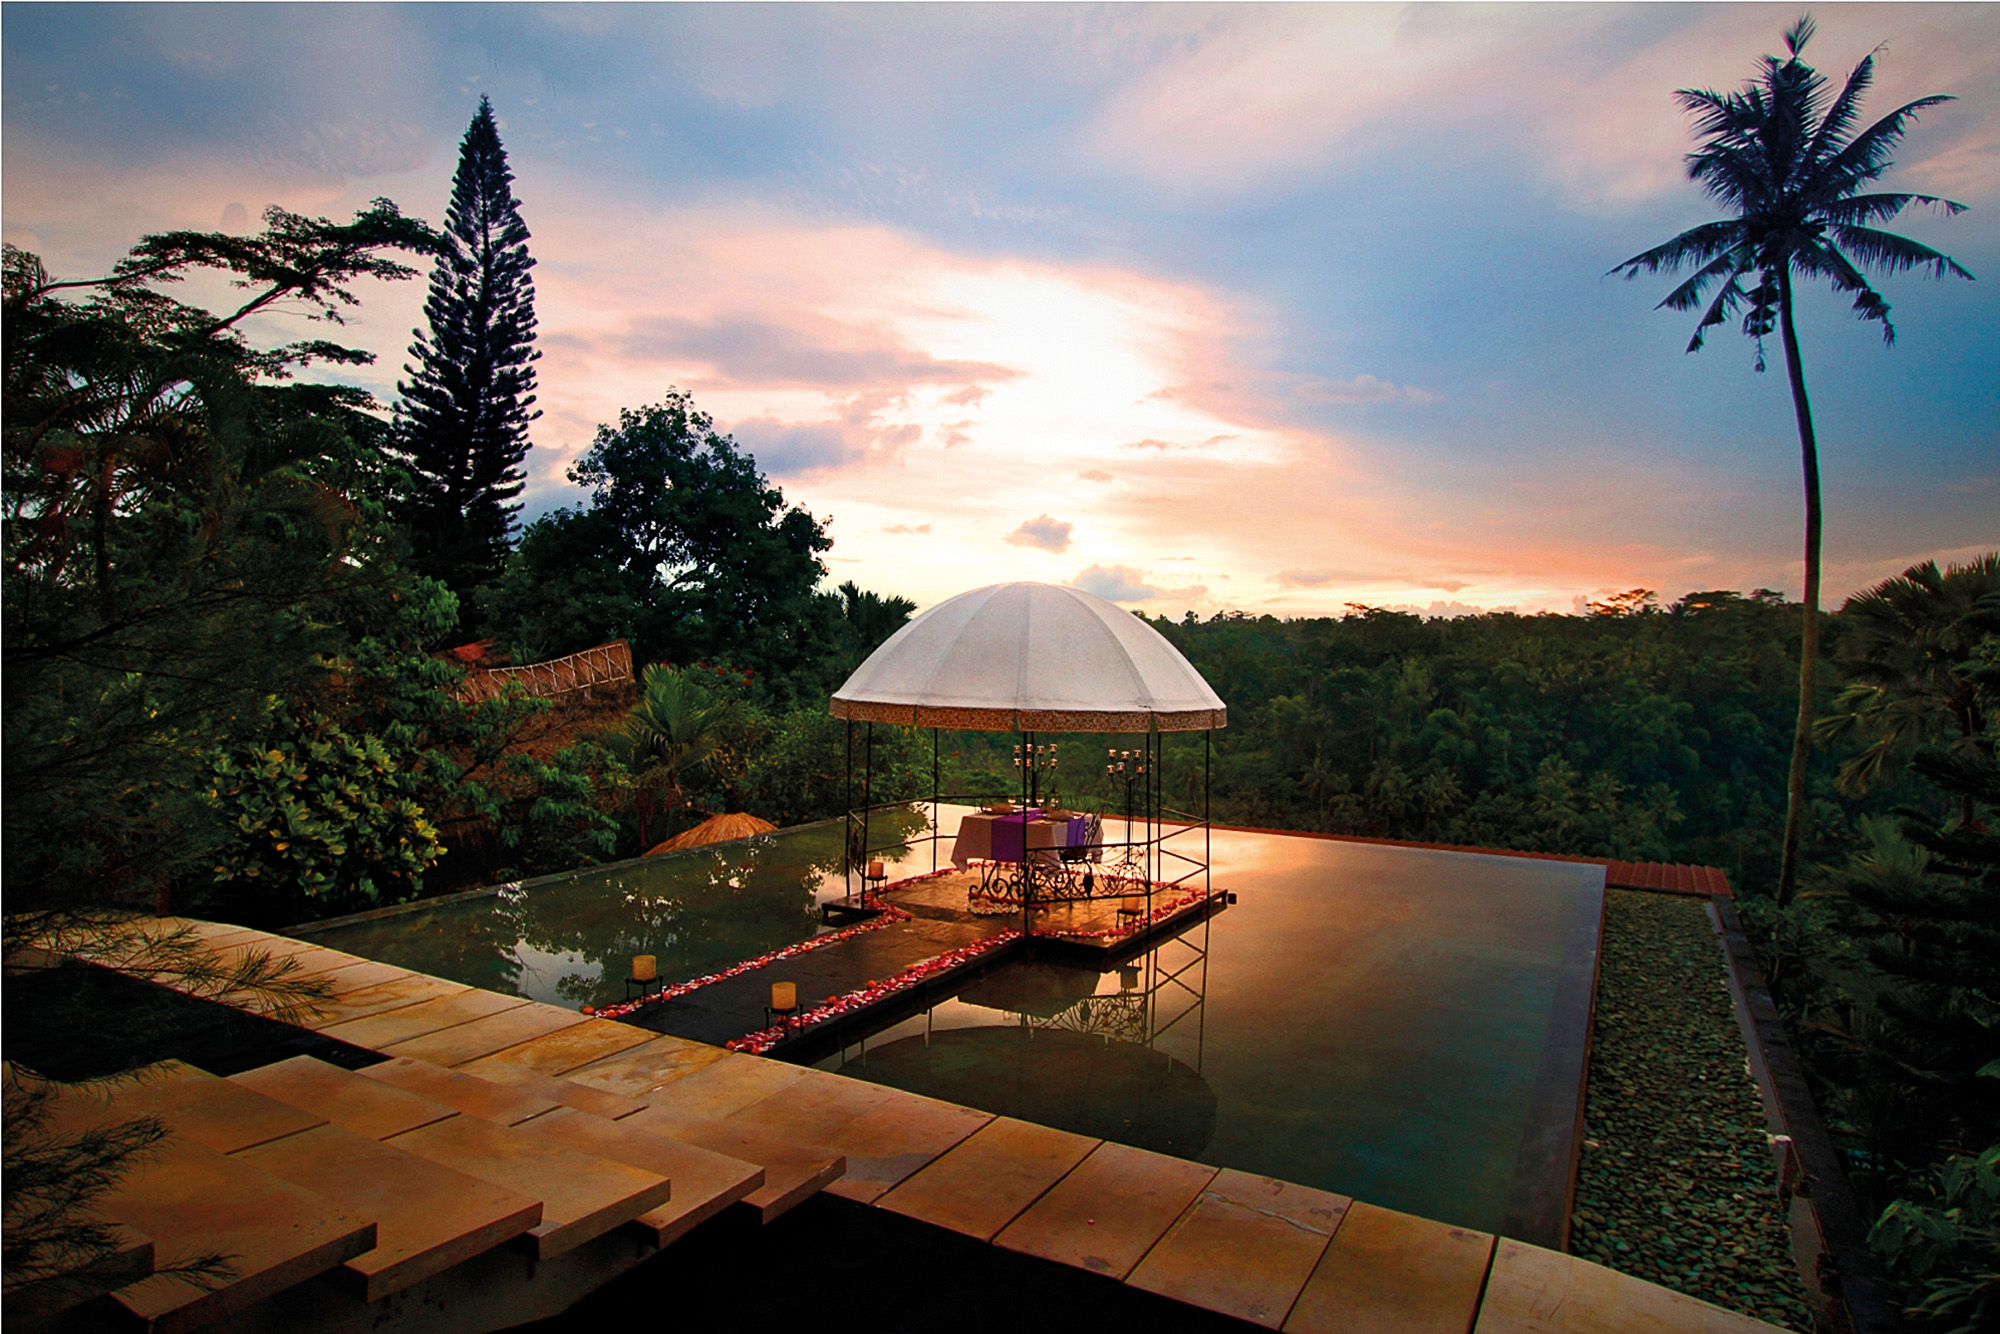 Decadent Dinner for Two - NOW! Bali